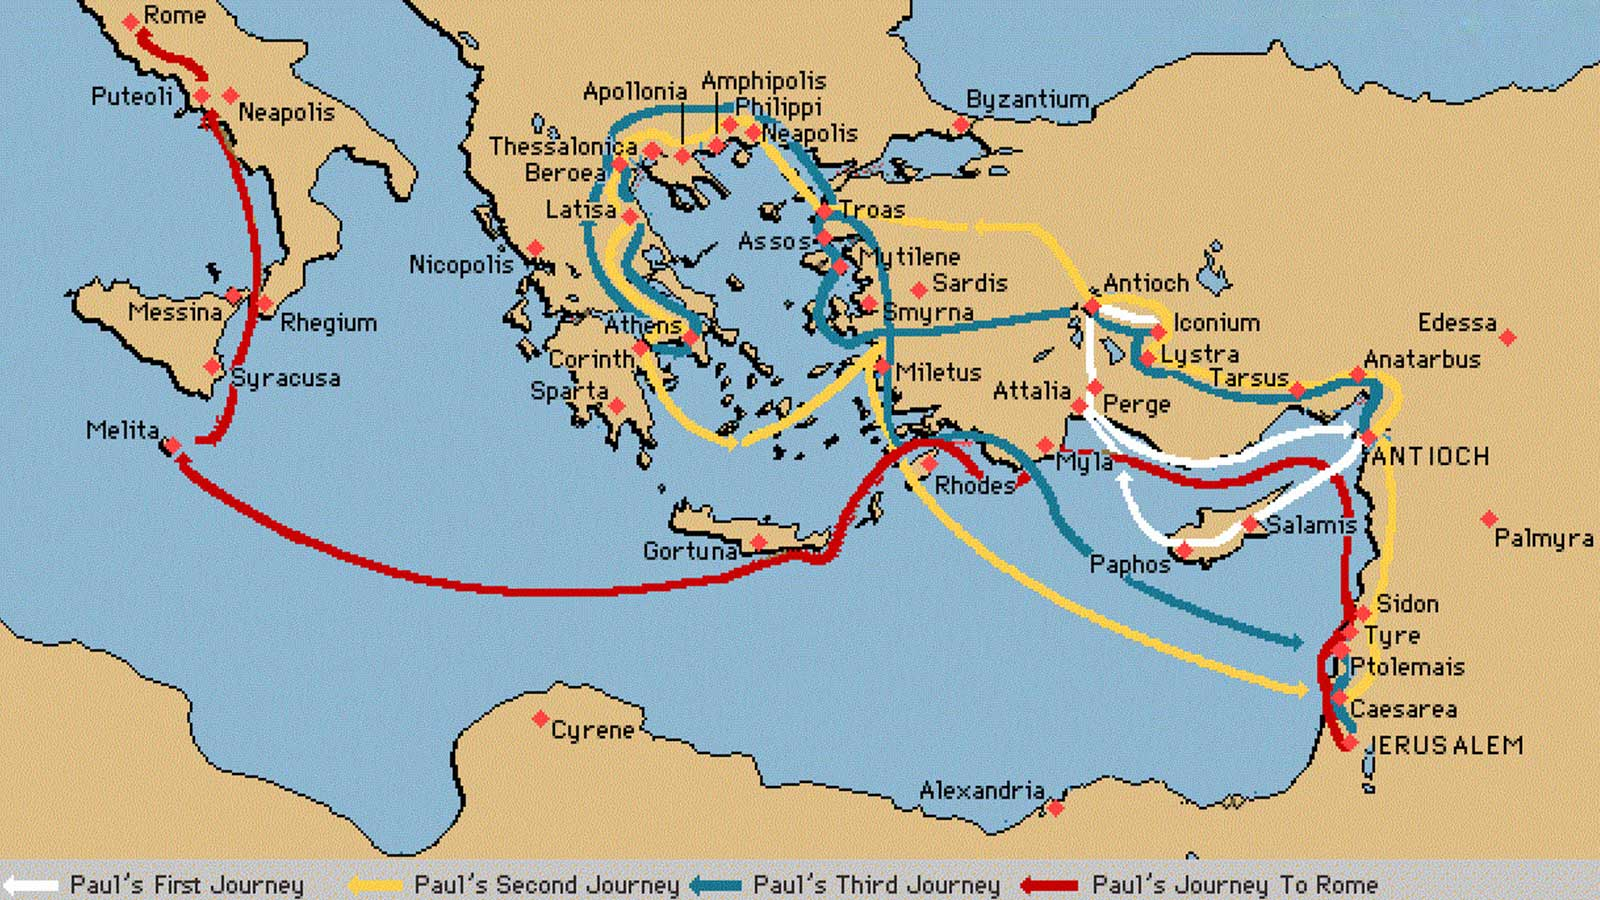 Saint Paul Missionary Journeys Map